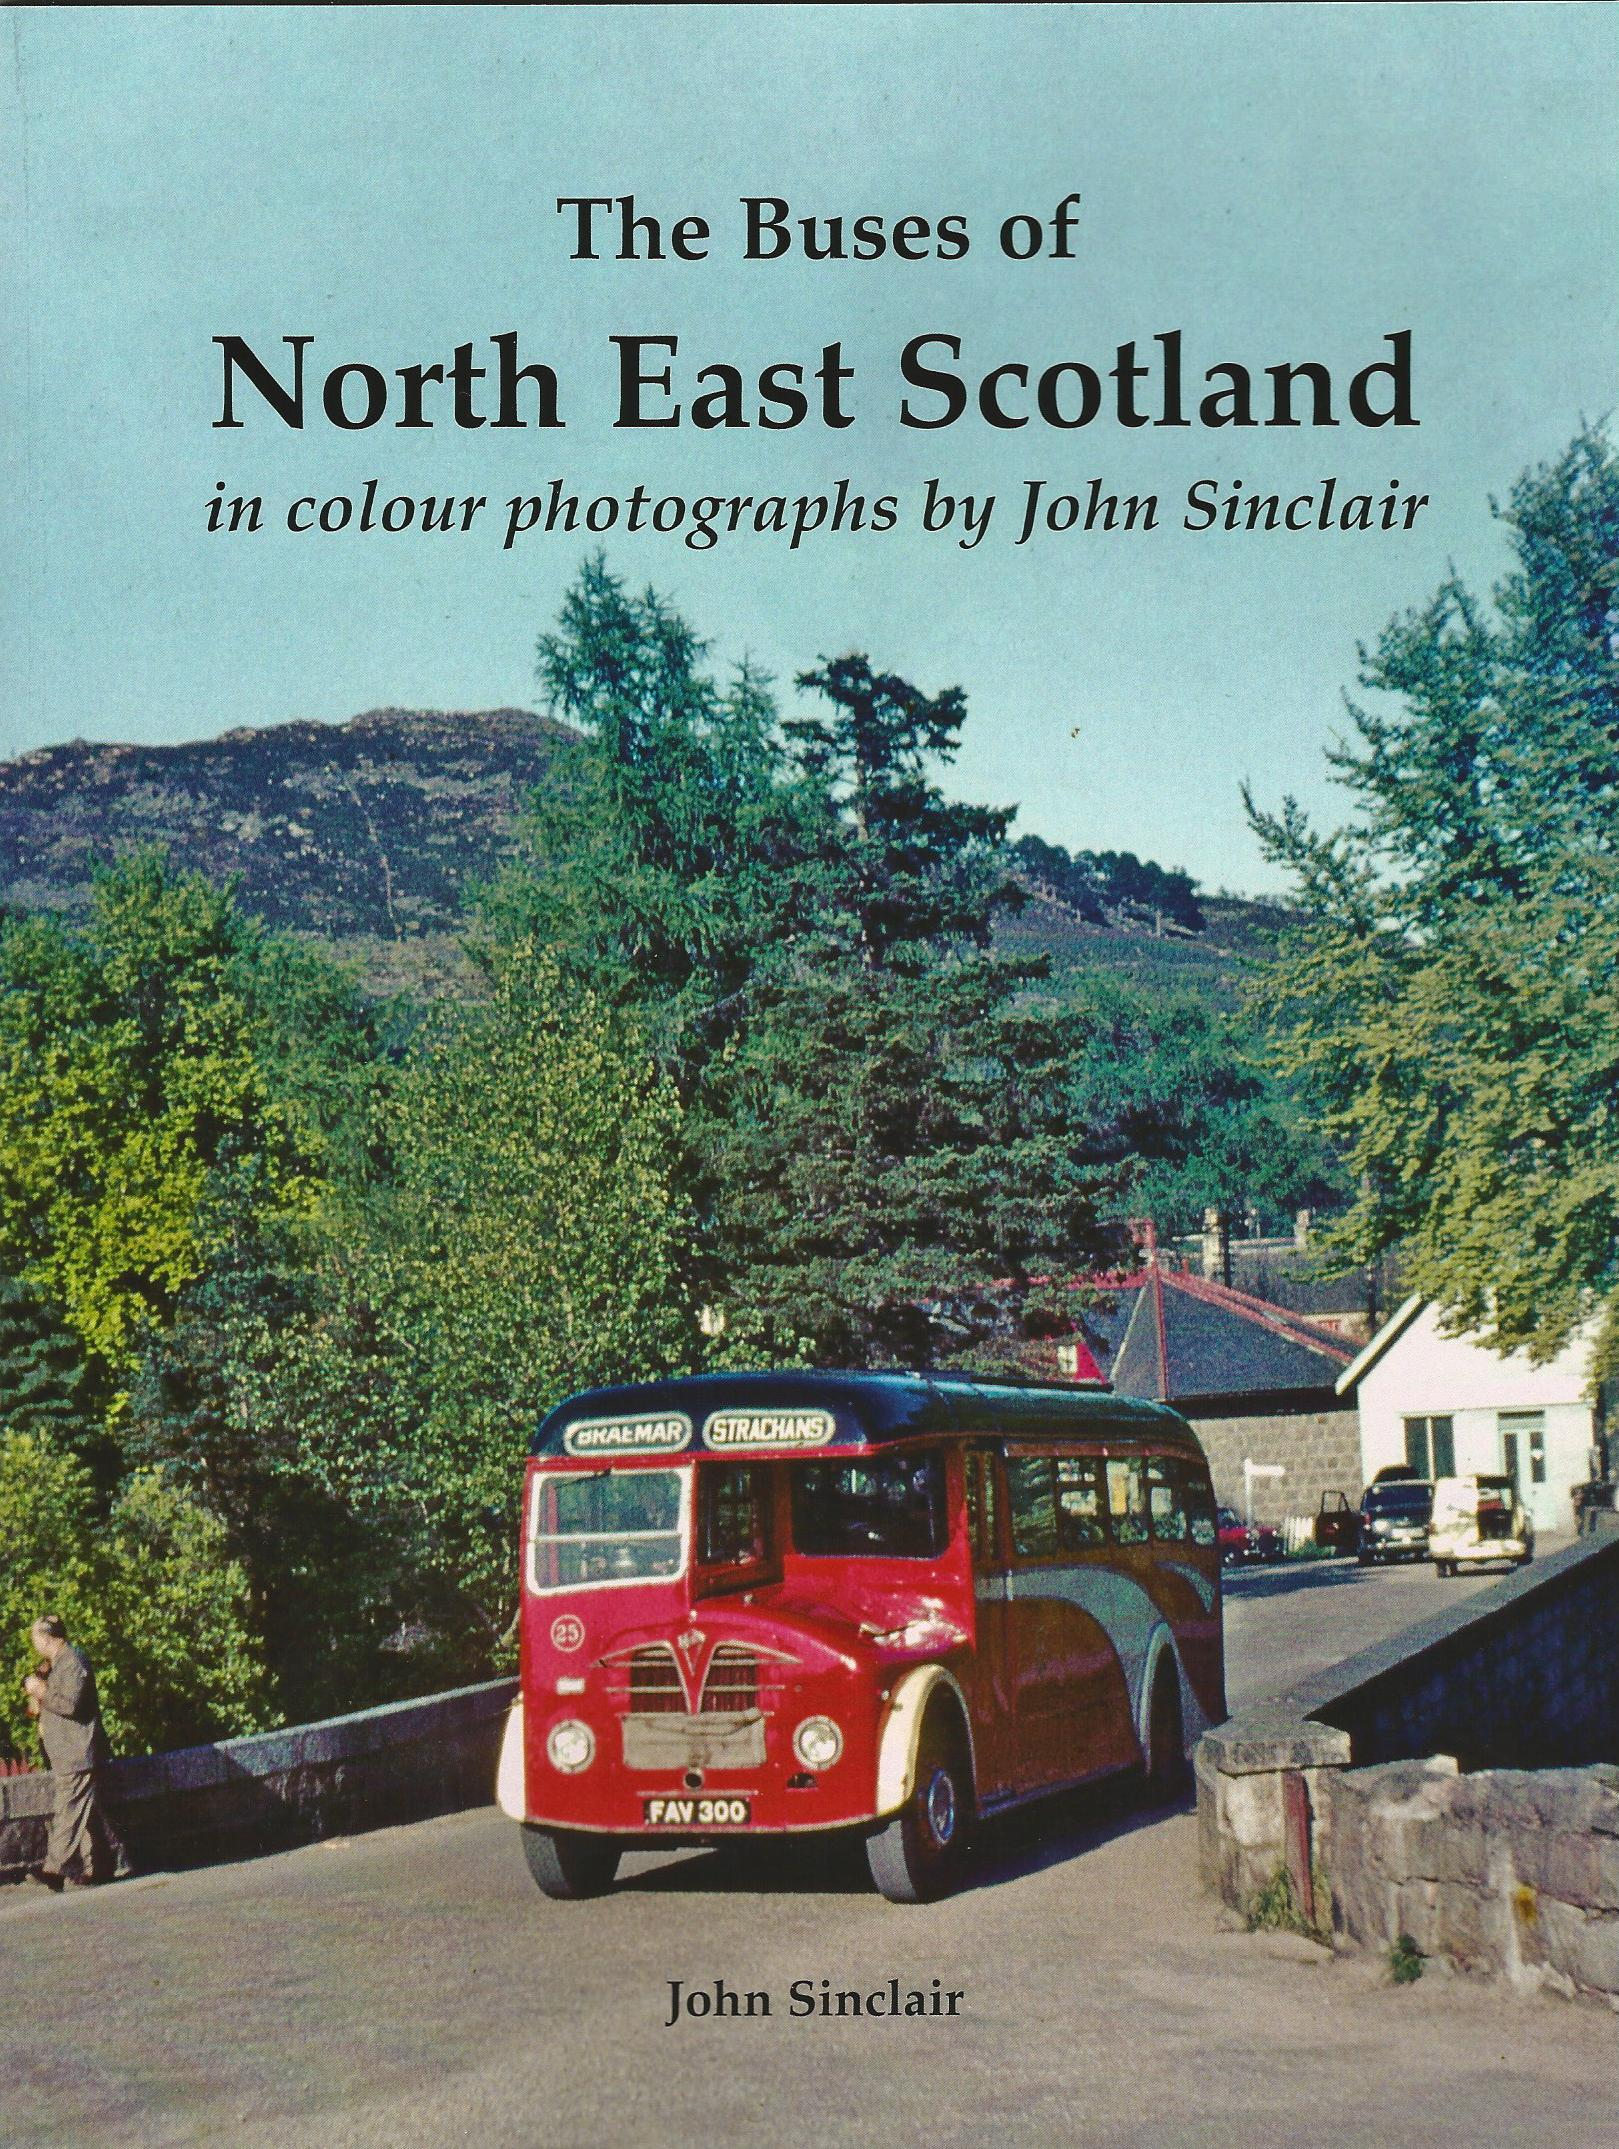 Image for The Buses of North East Scotland in colour by John Sinclair